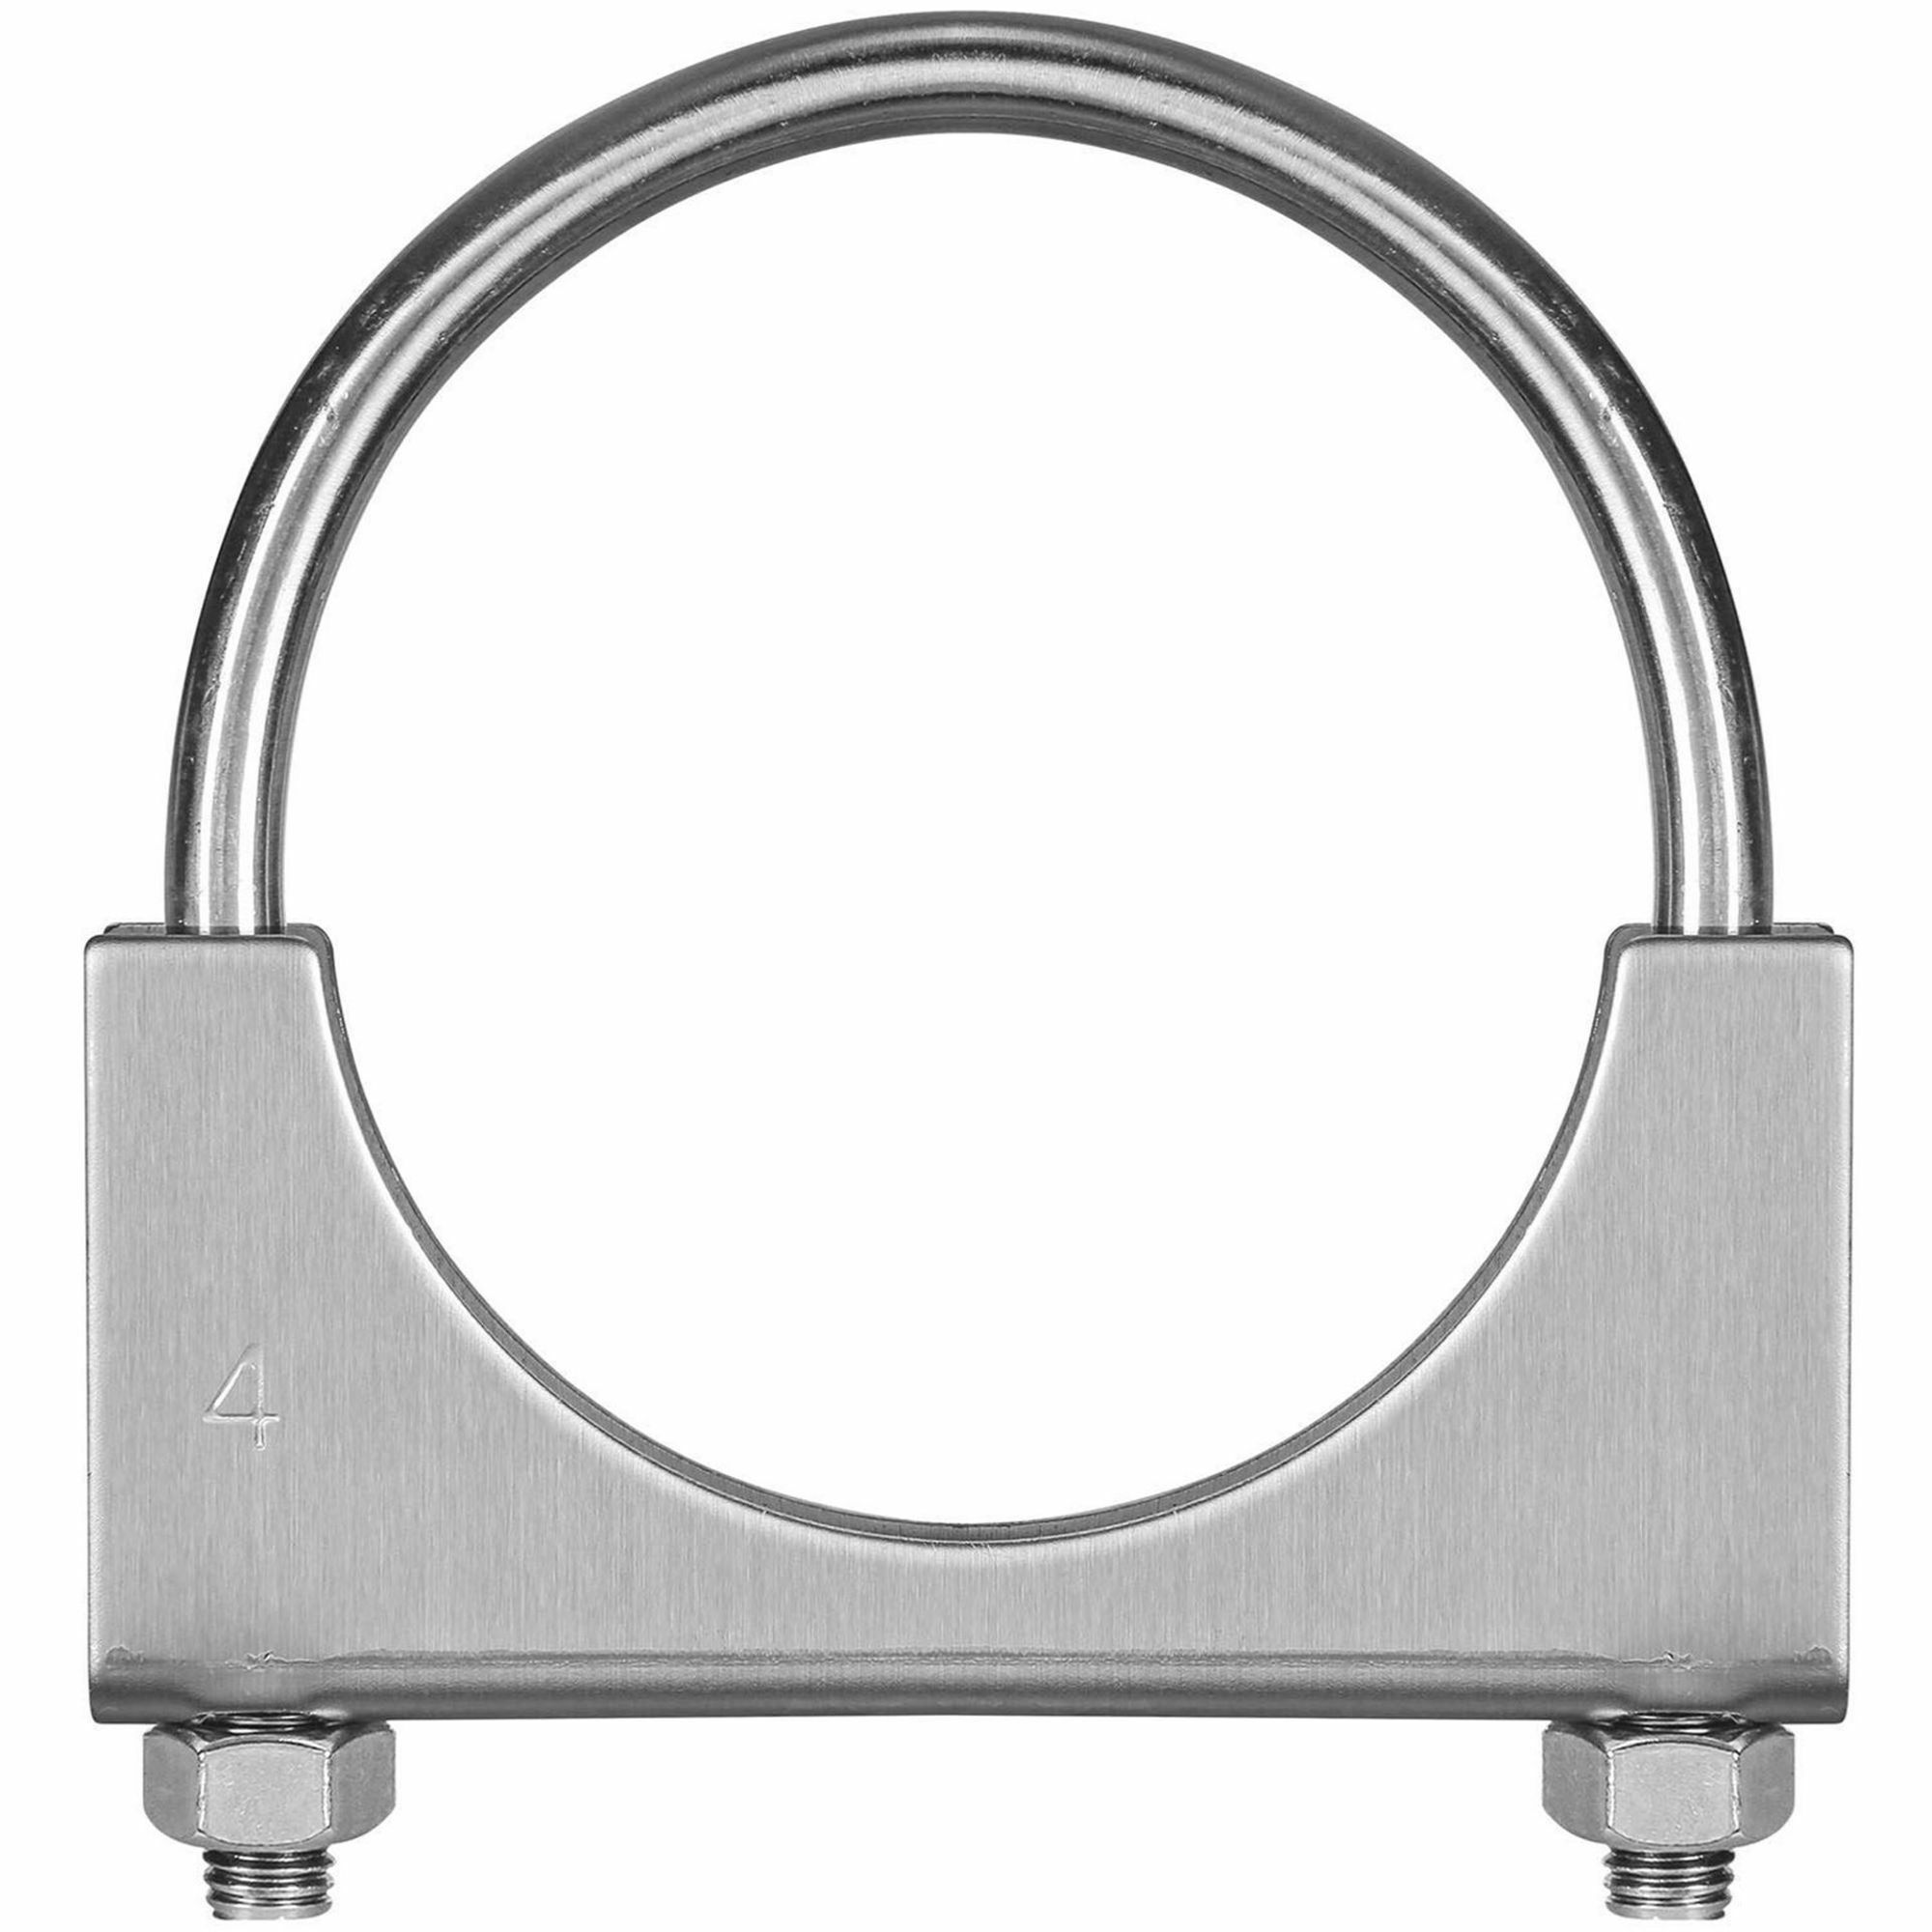 Picture of TOTALFLOW TF-U400 U-Bolt   Saddle Exhaust Muffler Clamp Band   4 Inch